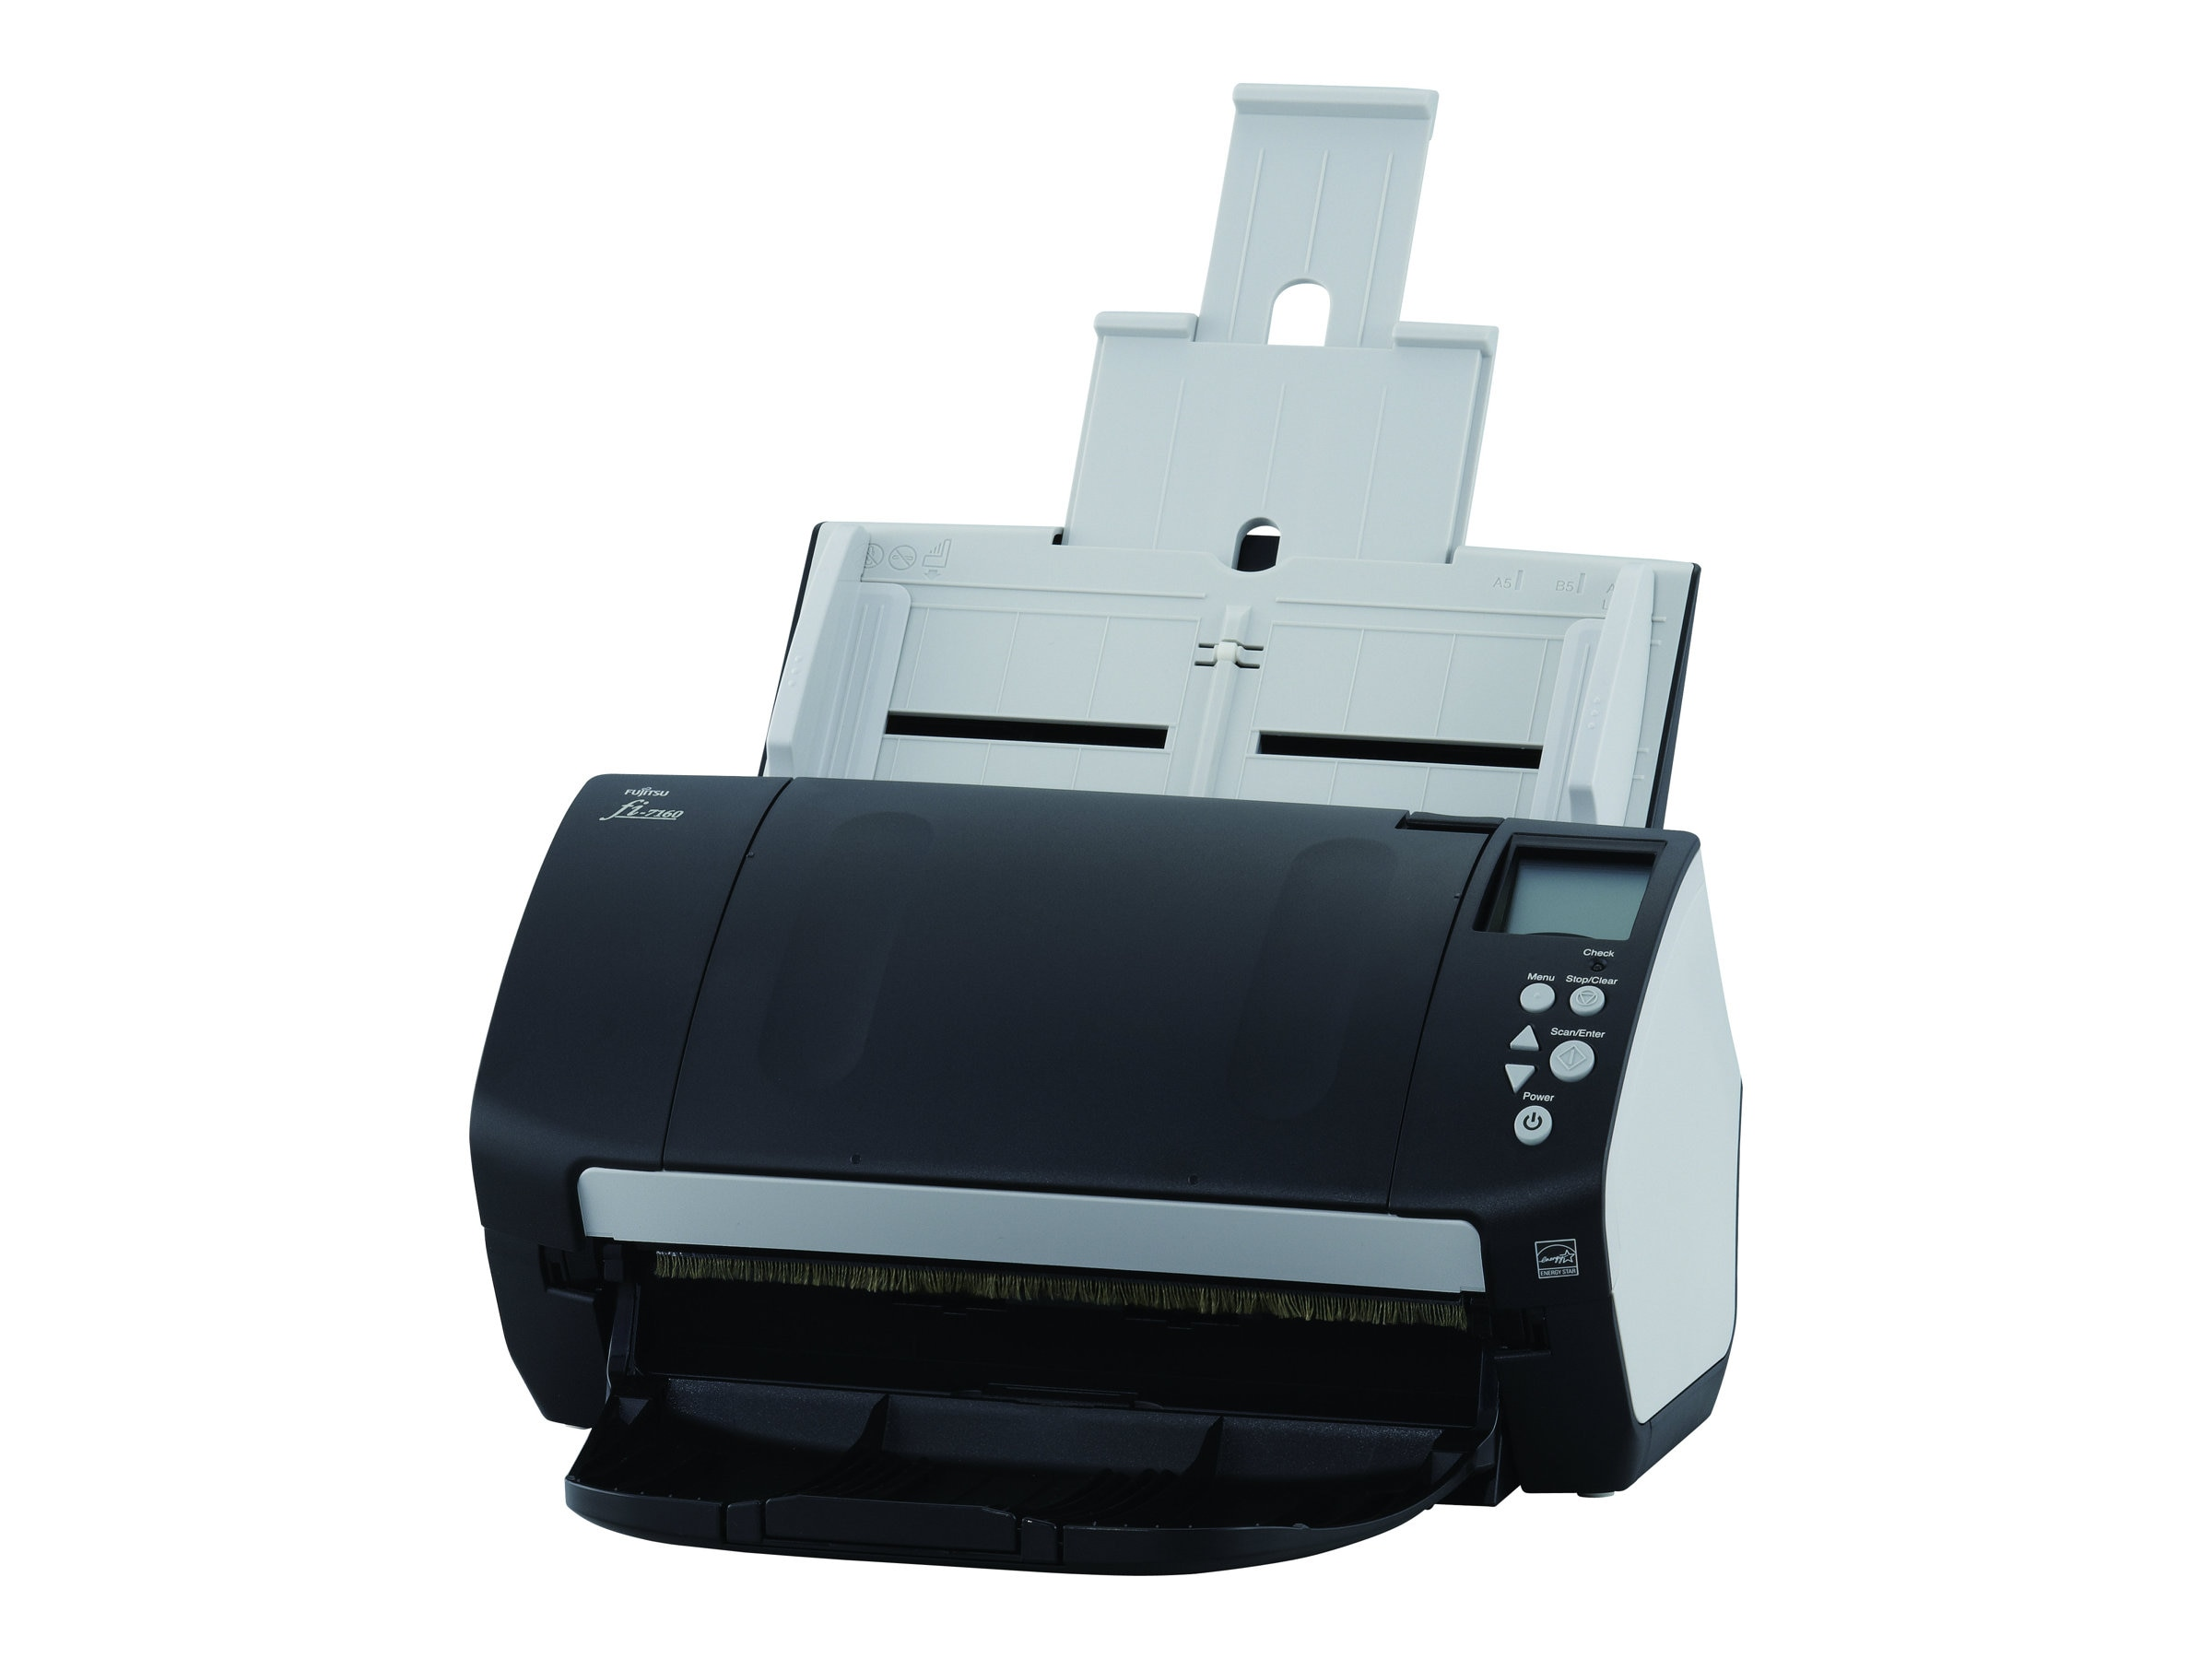 clutter for sketch better volk neat live paper business amy desk cards receipt scanner colorful the solution receipts and dsc